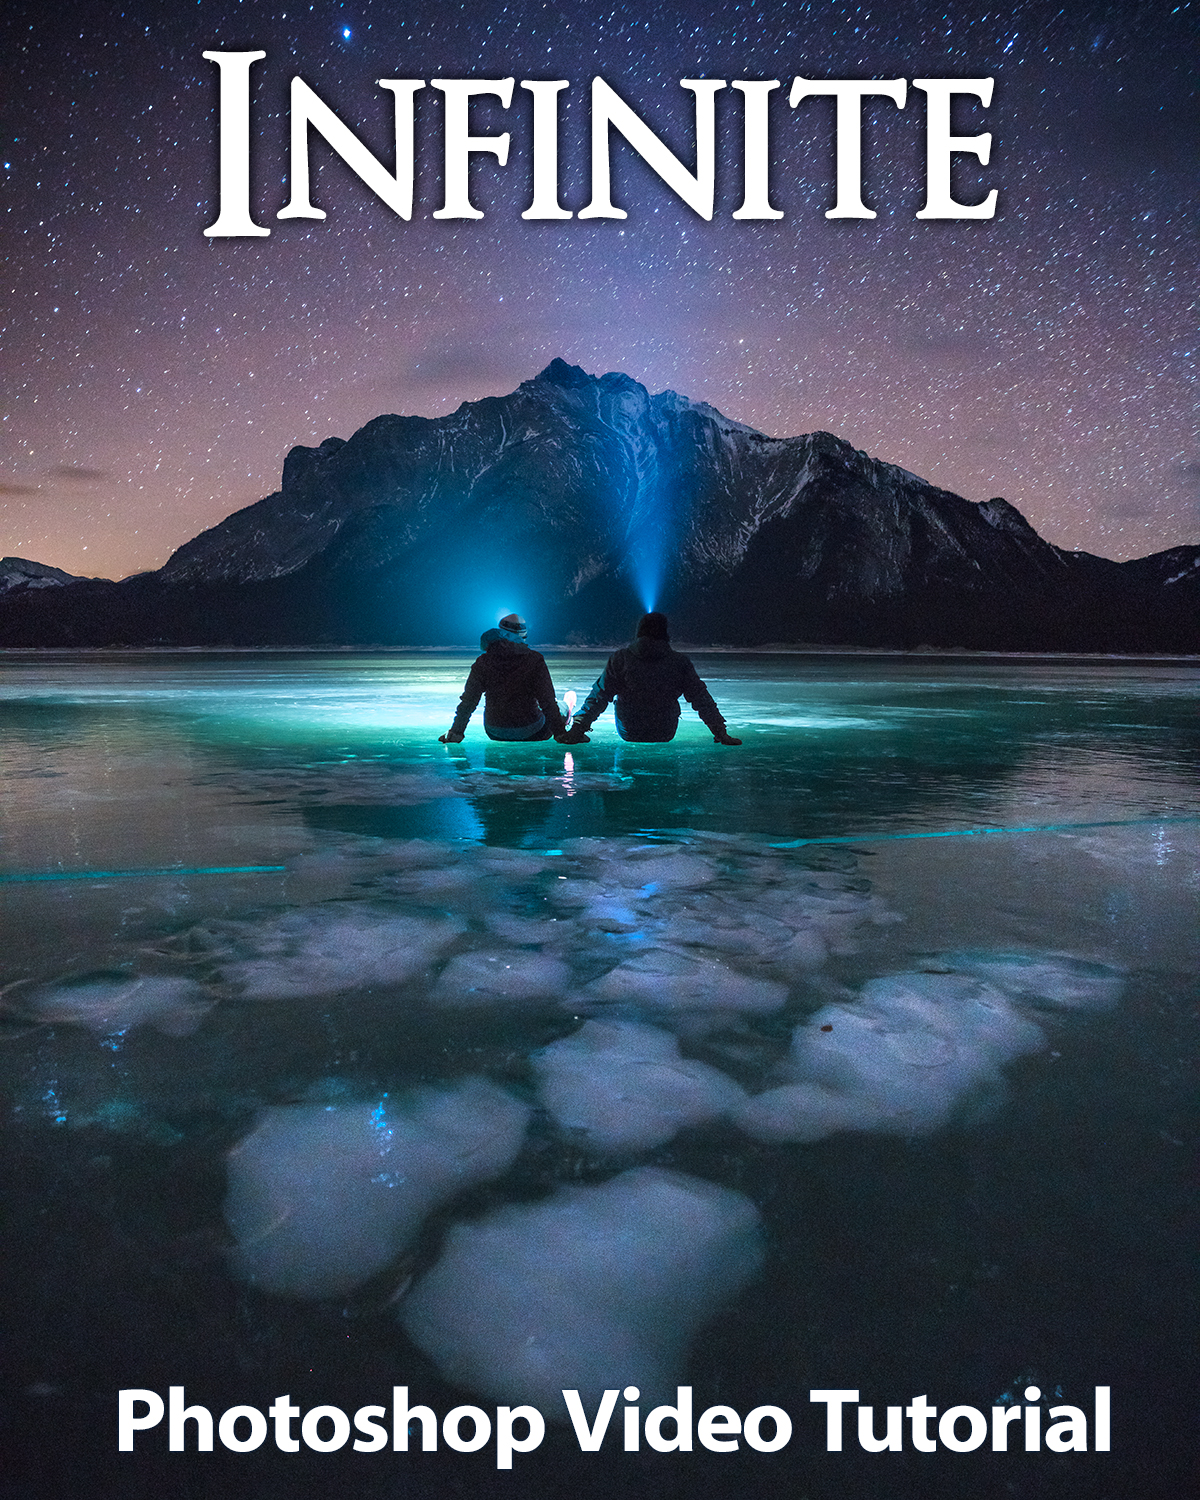 Photoshop Video Tutorial for 'Infinite' by Gavin Hardcastle